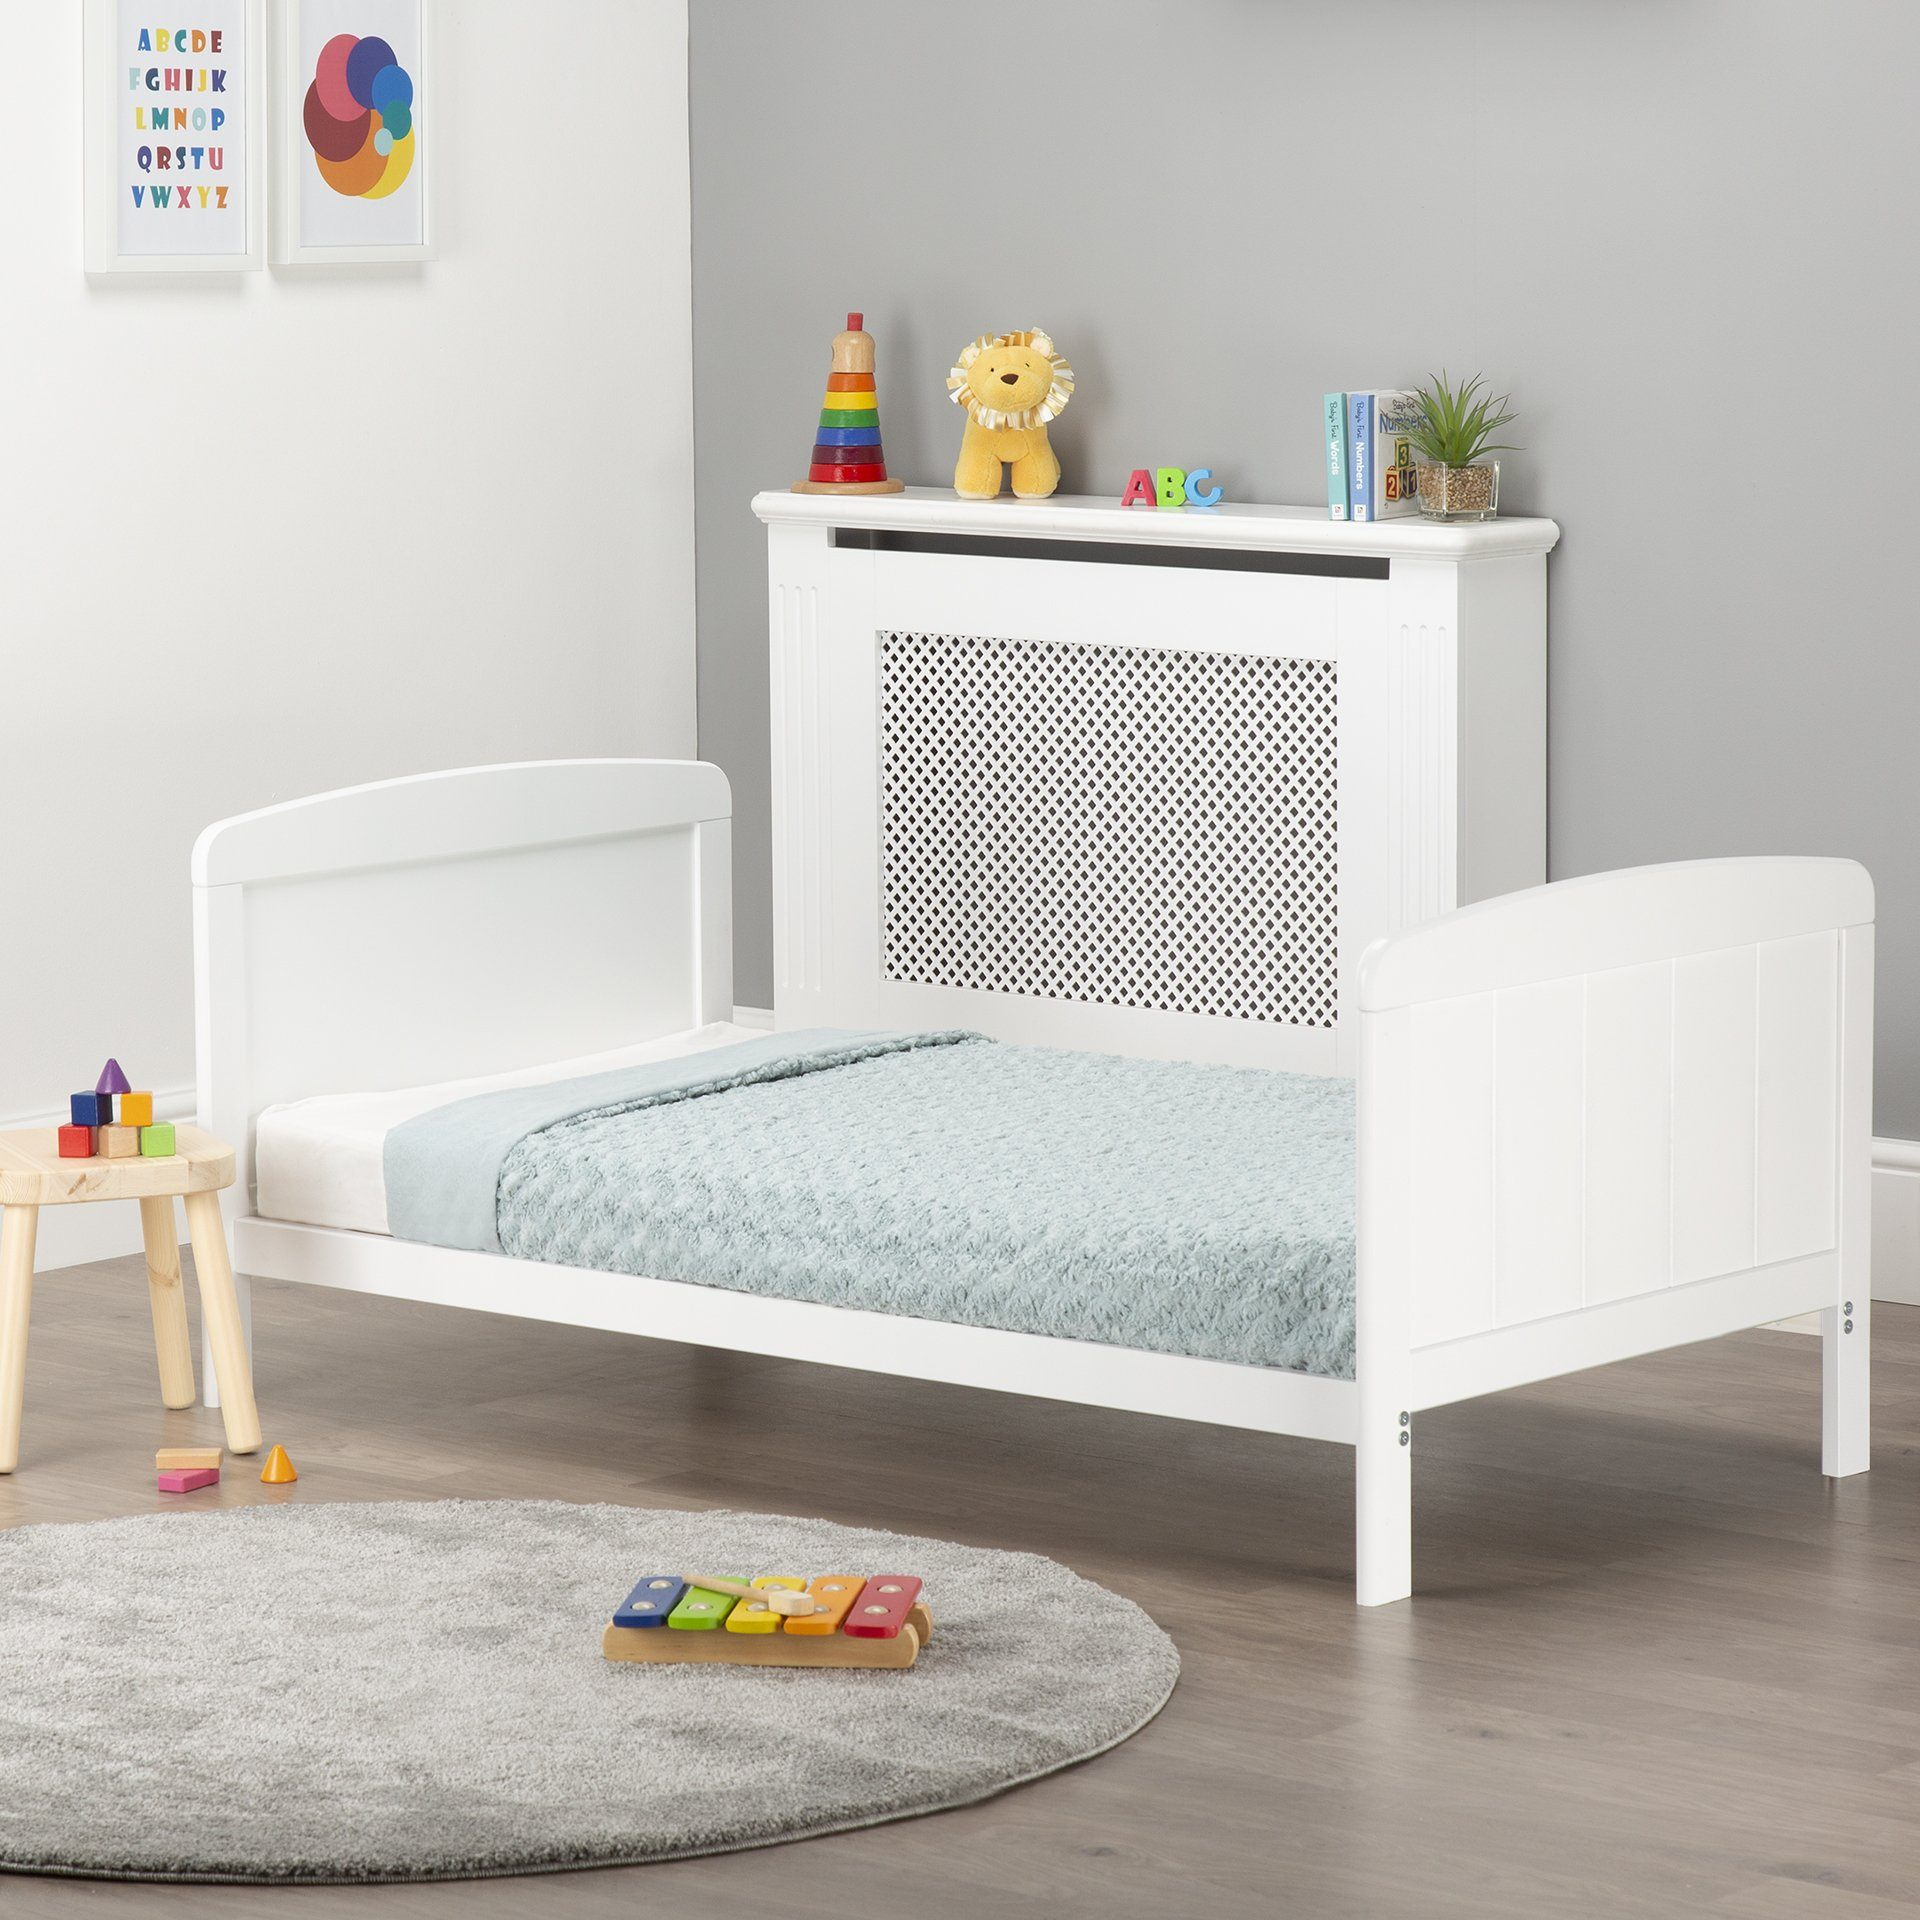 Juliet CotBed with CuddleCo Harmony Sprung Mattress - White cuddleco